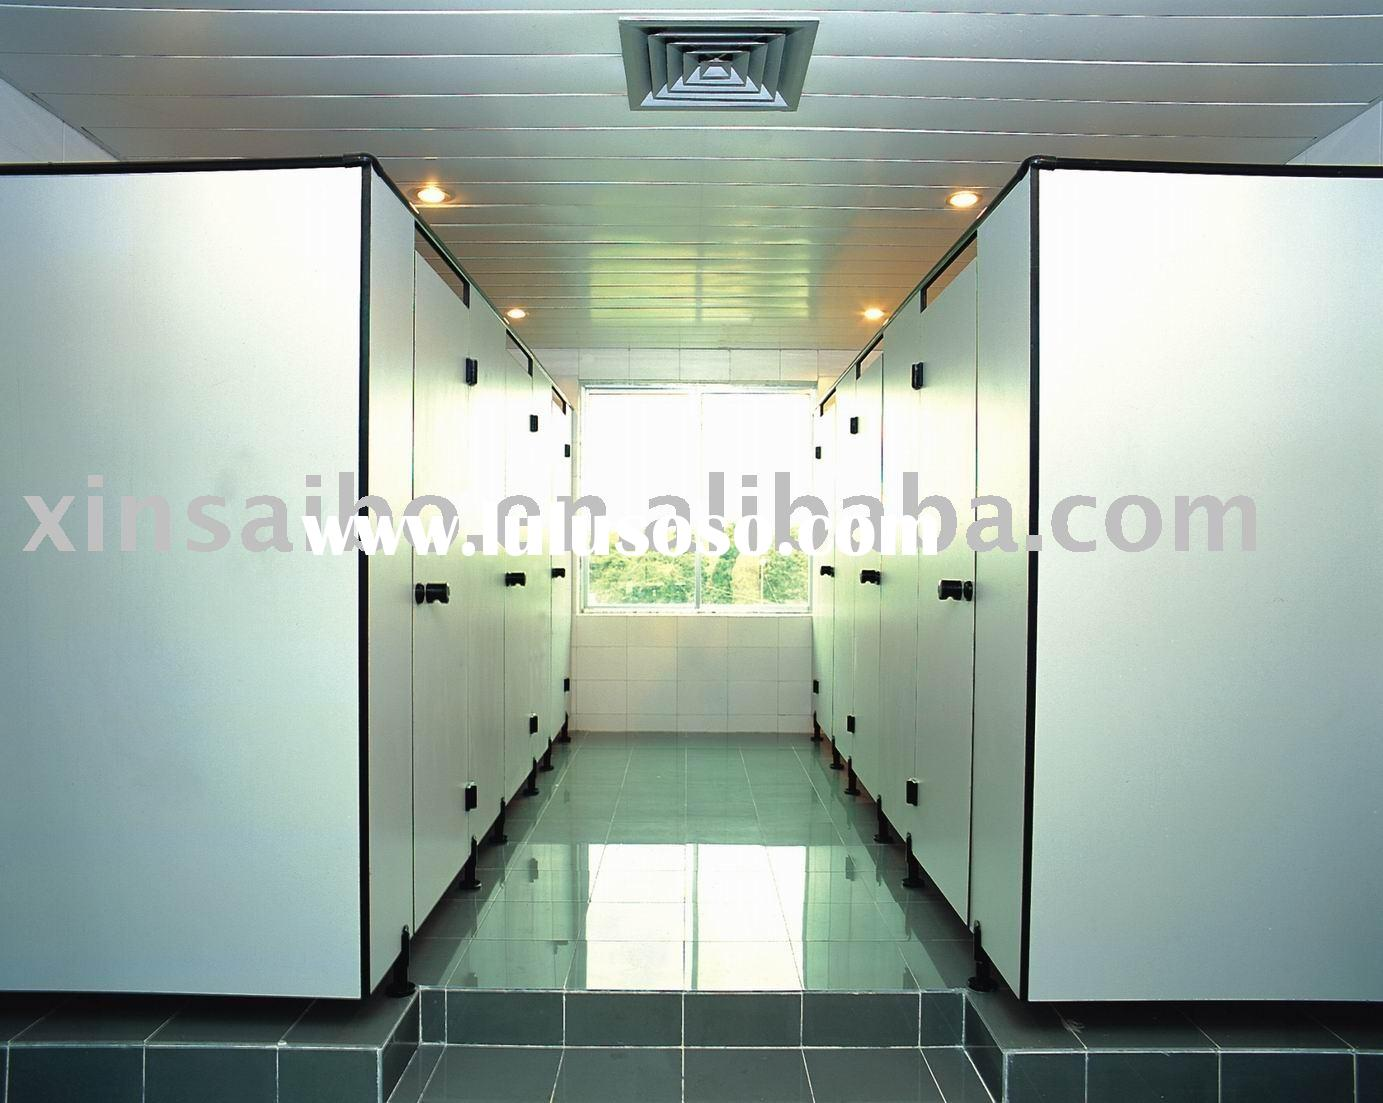 Bathroom Partitions Hardware Commercial Bathroom Partitions Hardware Commercial Manufacturers